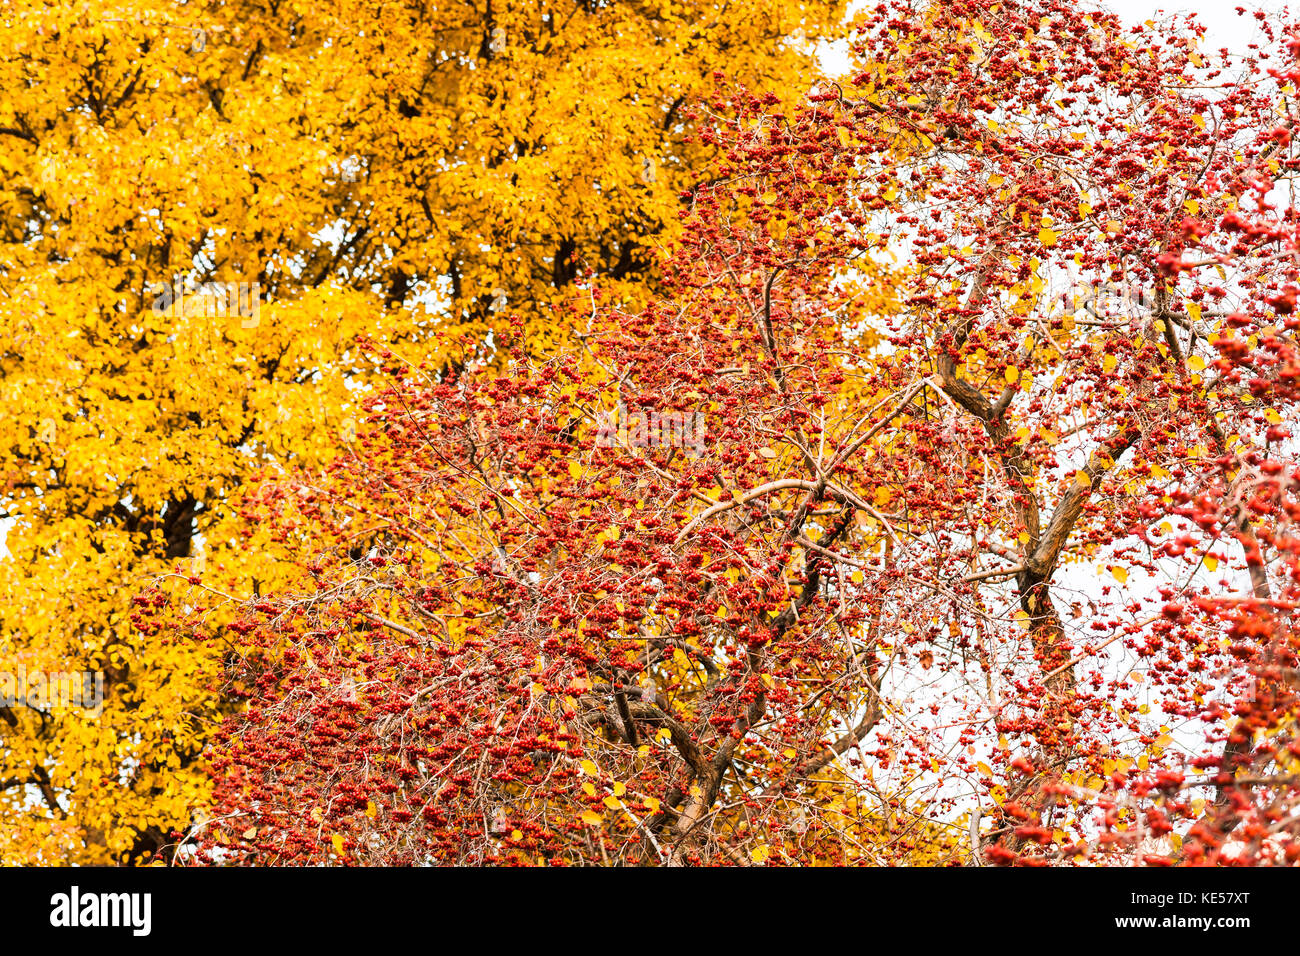 Hawthorn tree with clusters of red berries against the background of a tall crab apple tree with yellow foliage - Stock Image